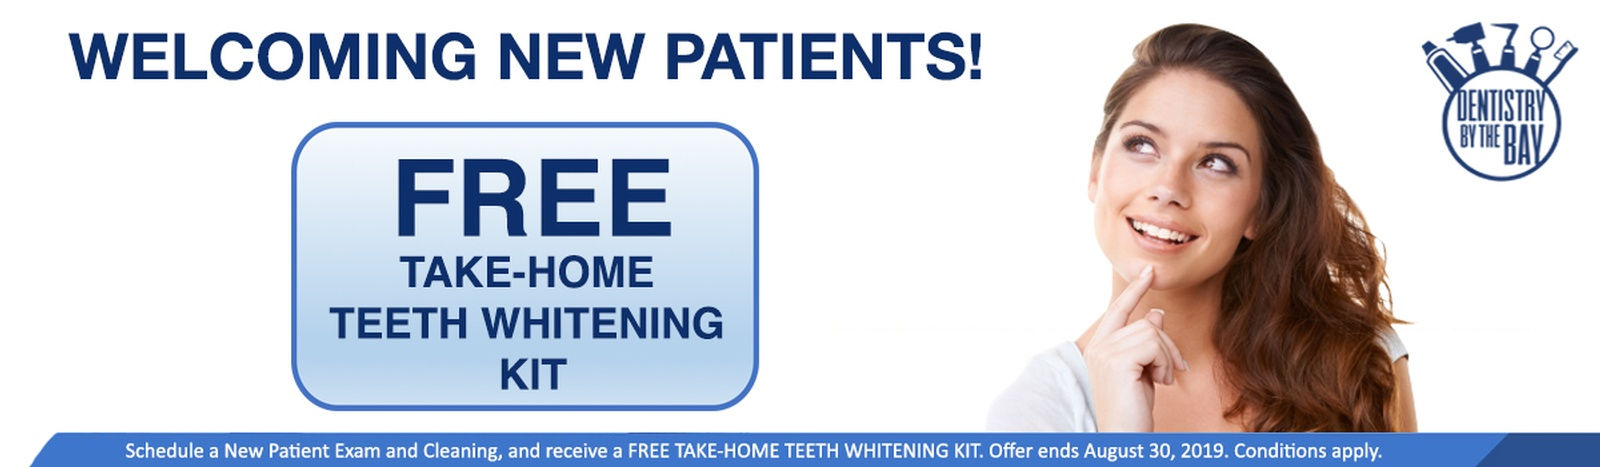 FREE TAKE-HOME TEETH WHITENING SPECIAL